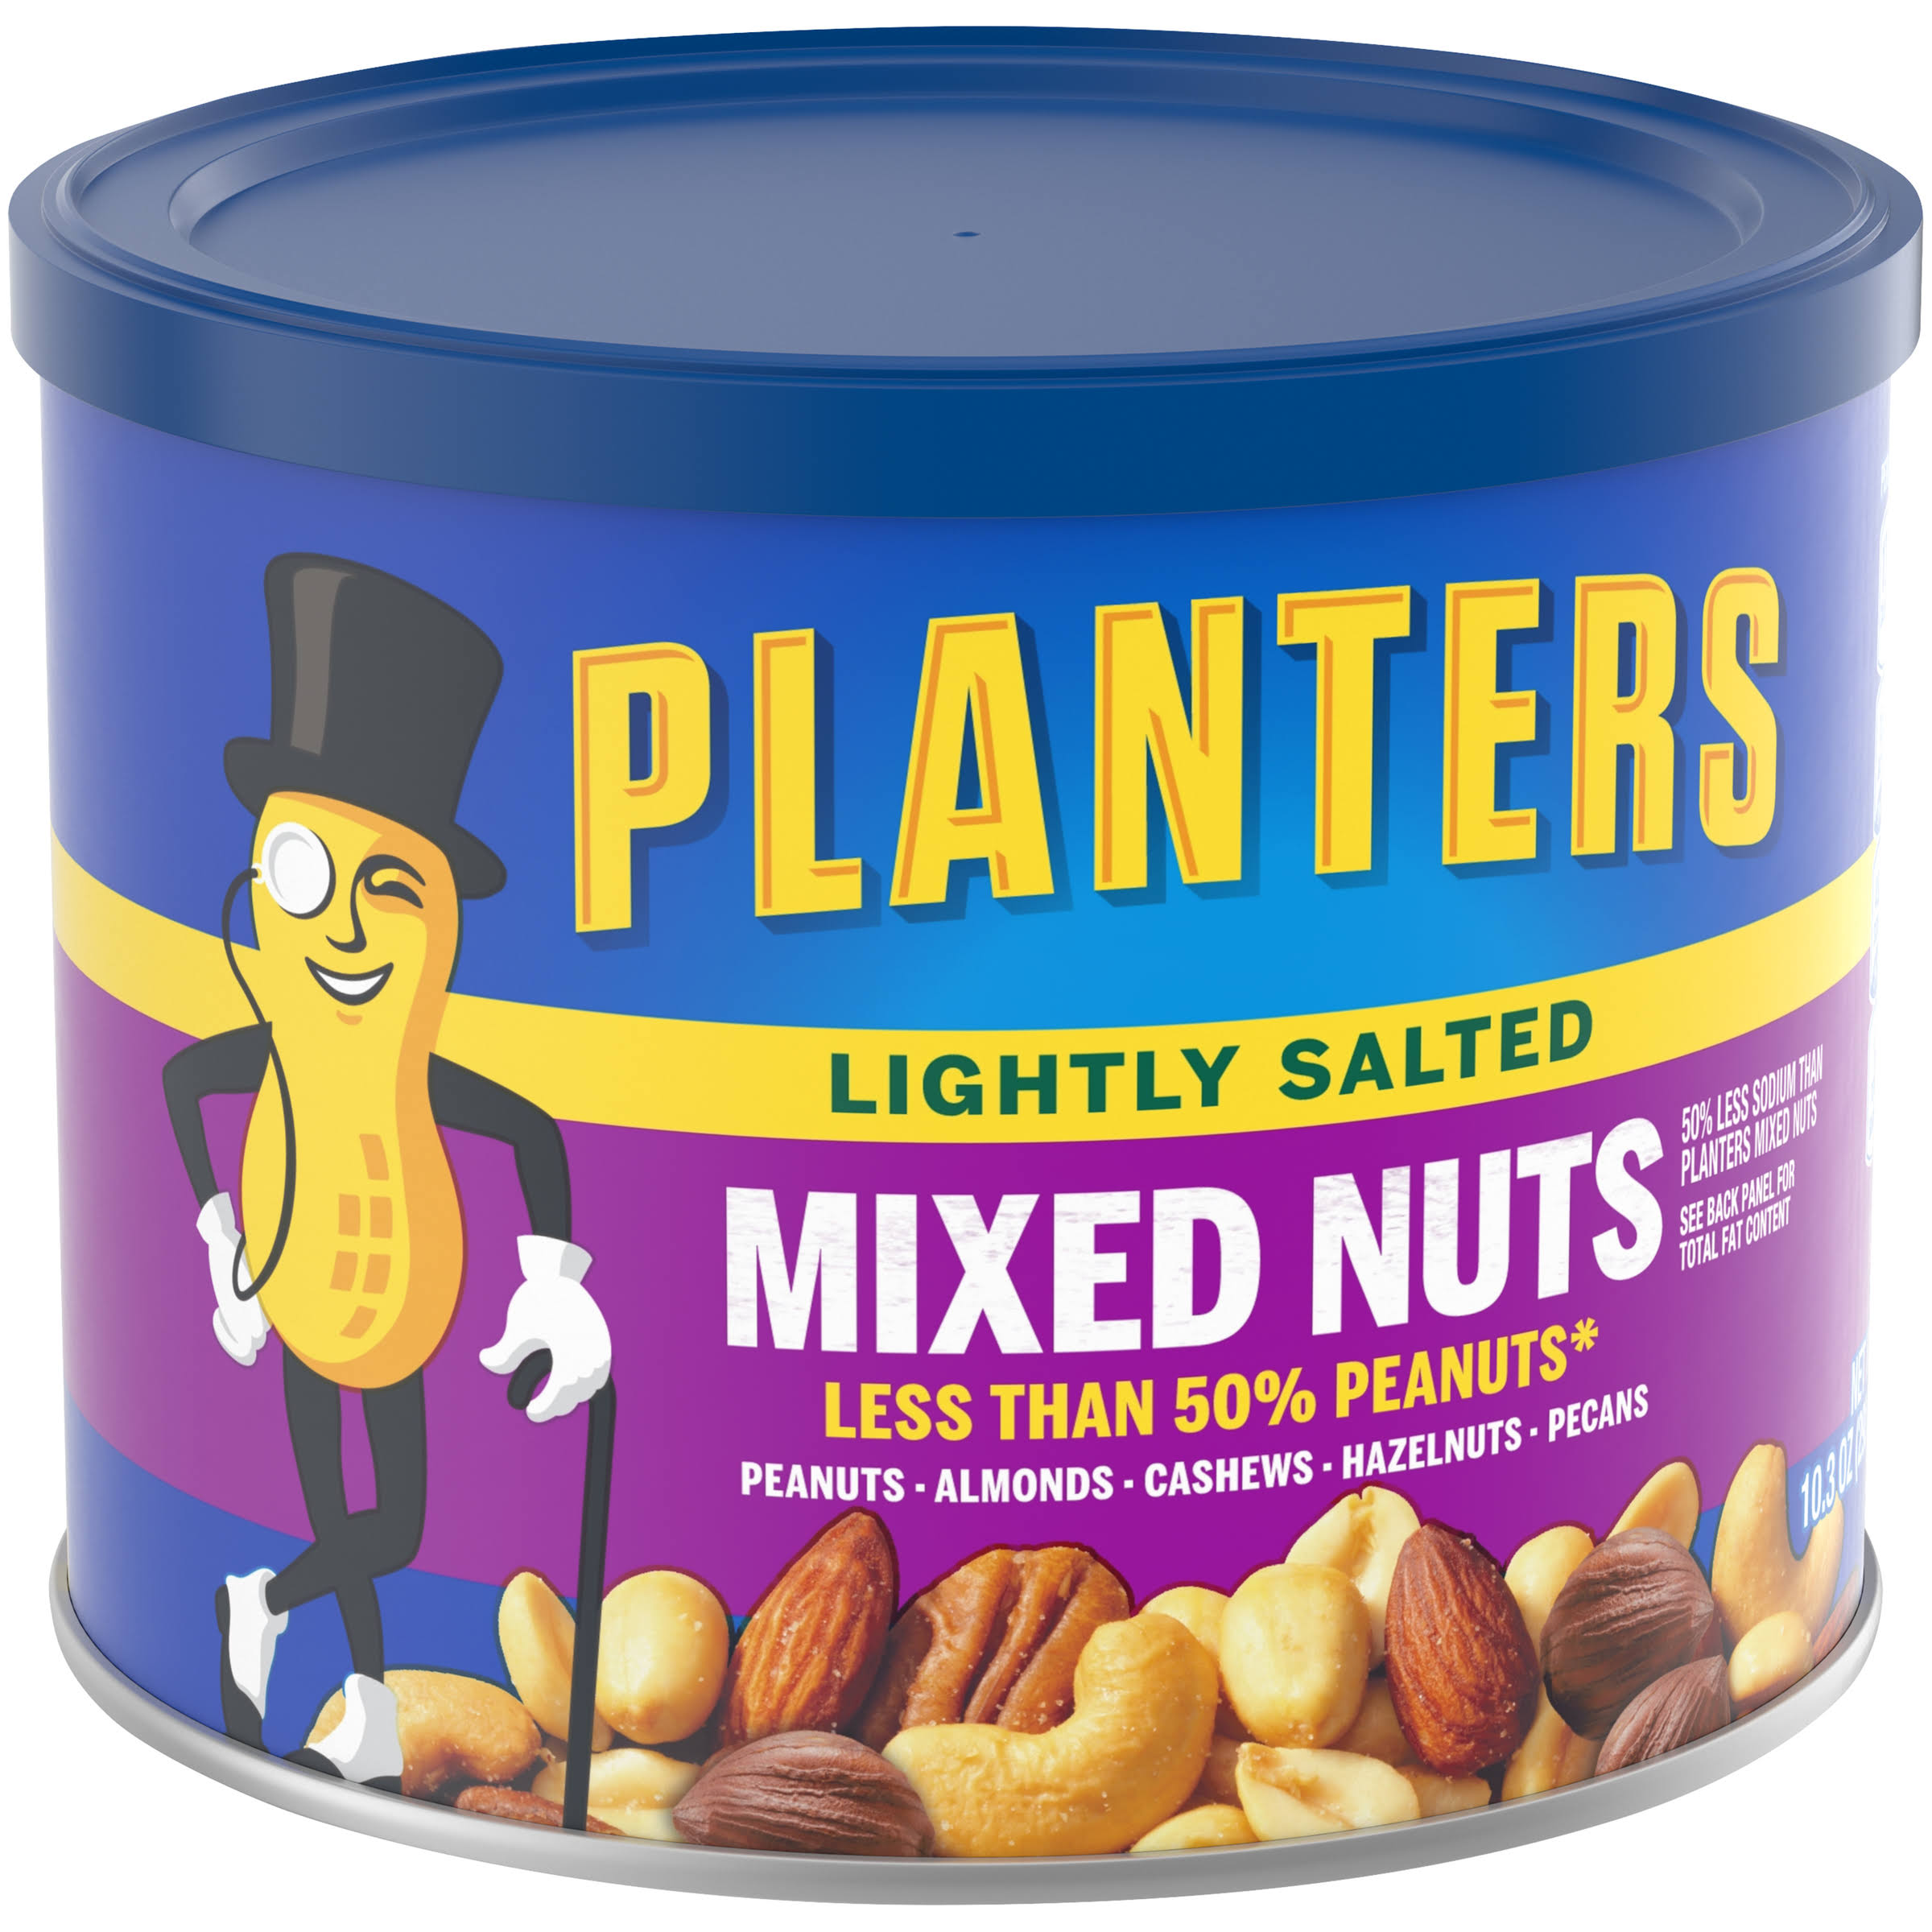 Planters Mixed Nuts - Lightly Salted, 10.3oz